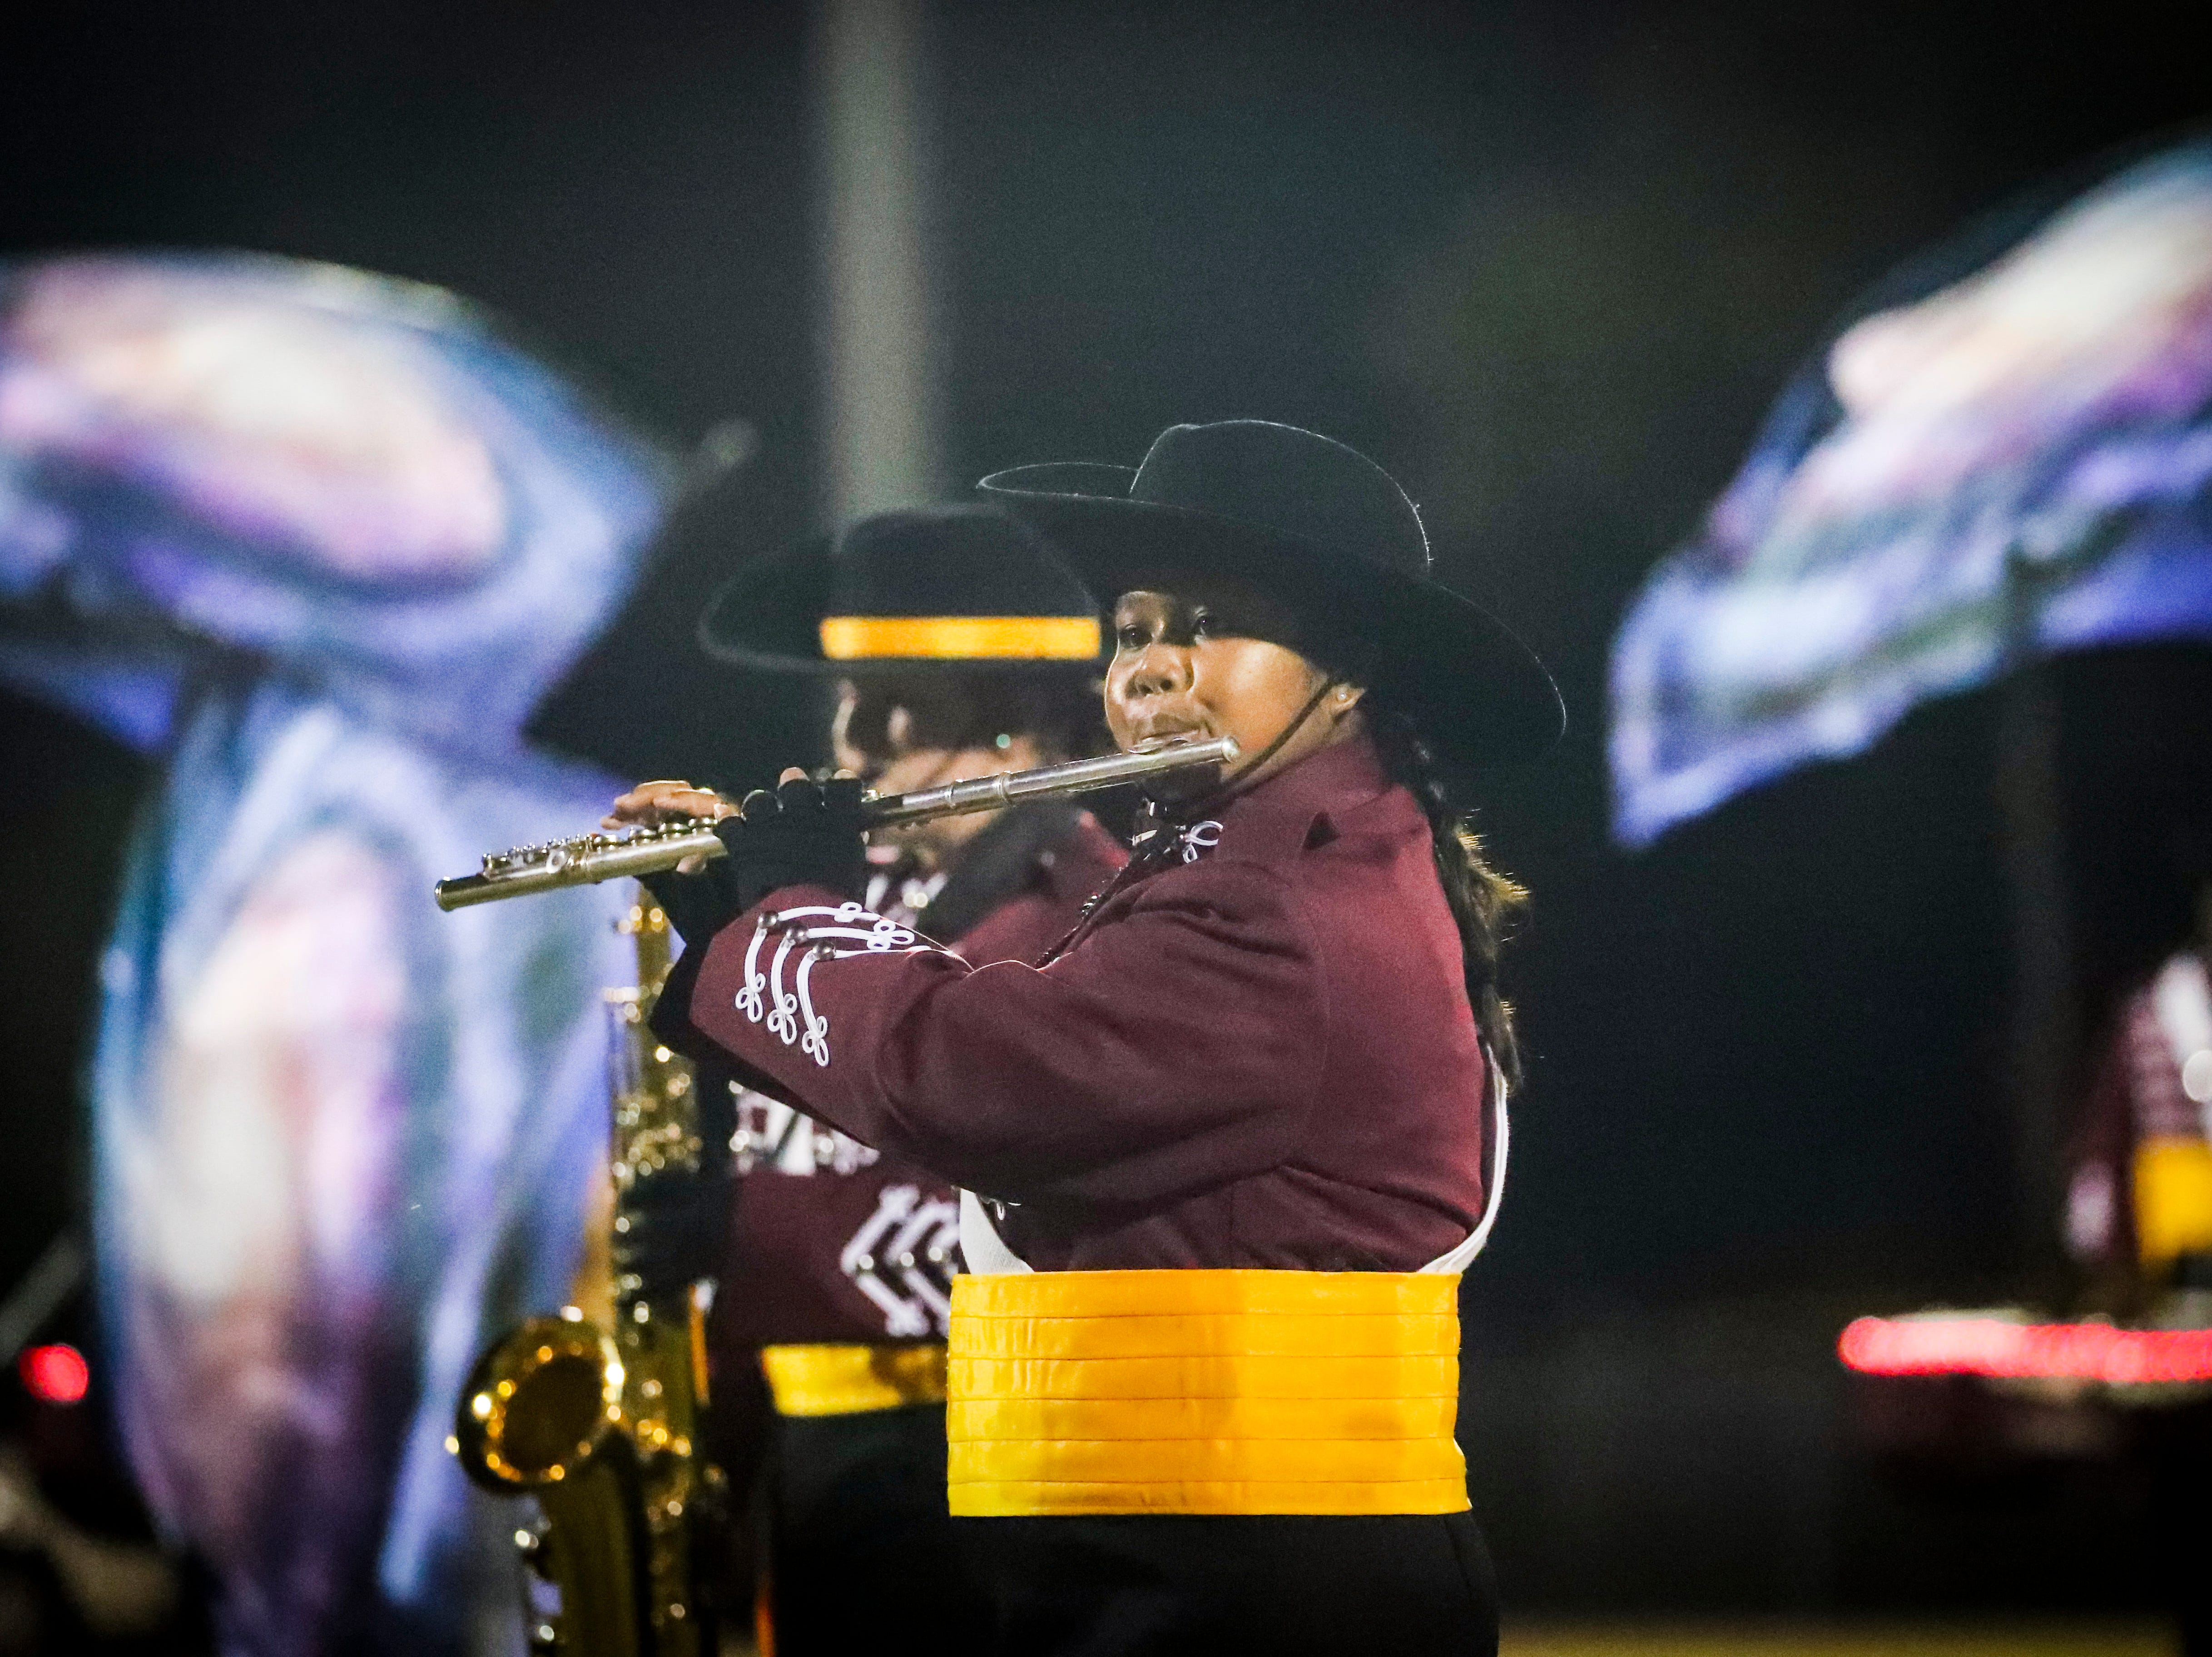 Images from the Dunbar at Riverdale high school football game, Friday, September 8th,2018.